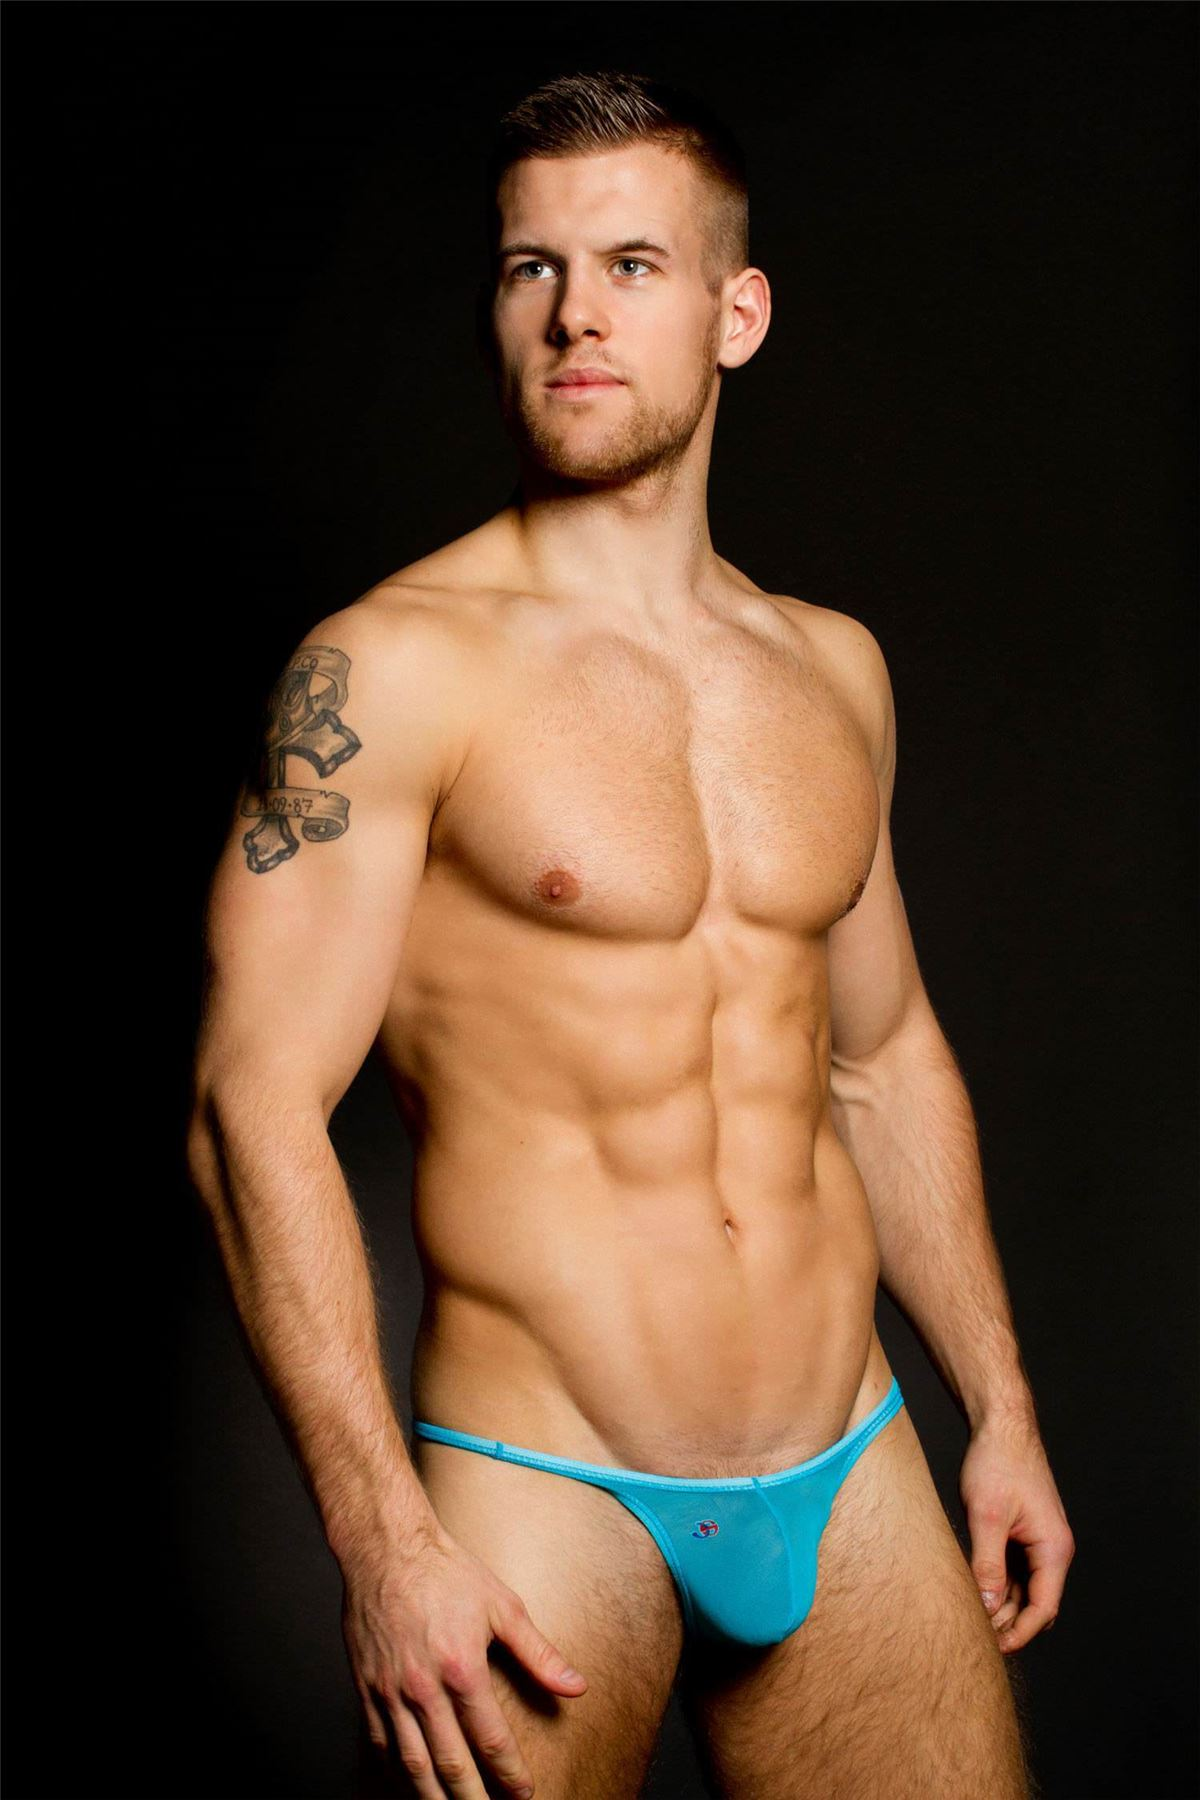 sheer bikini brief